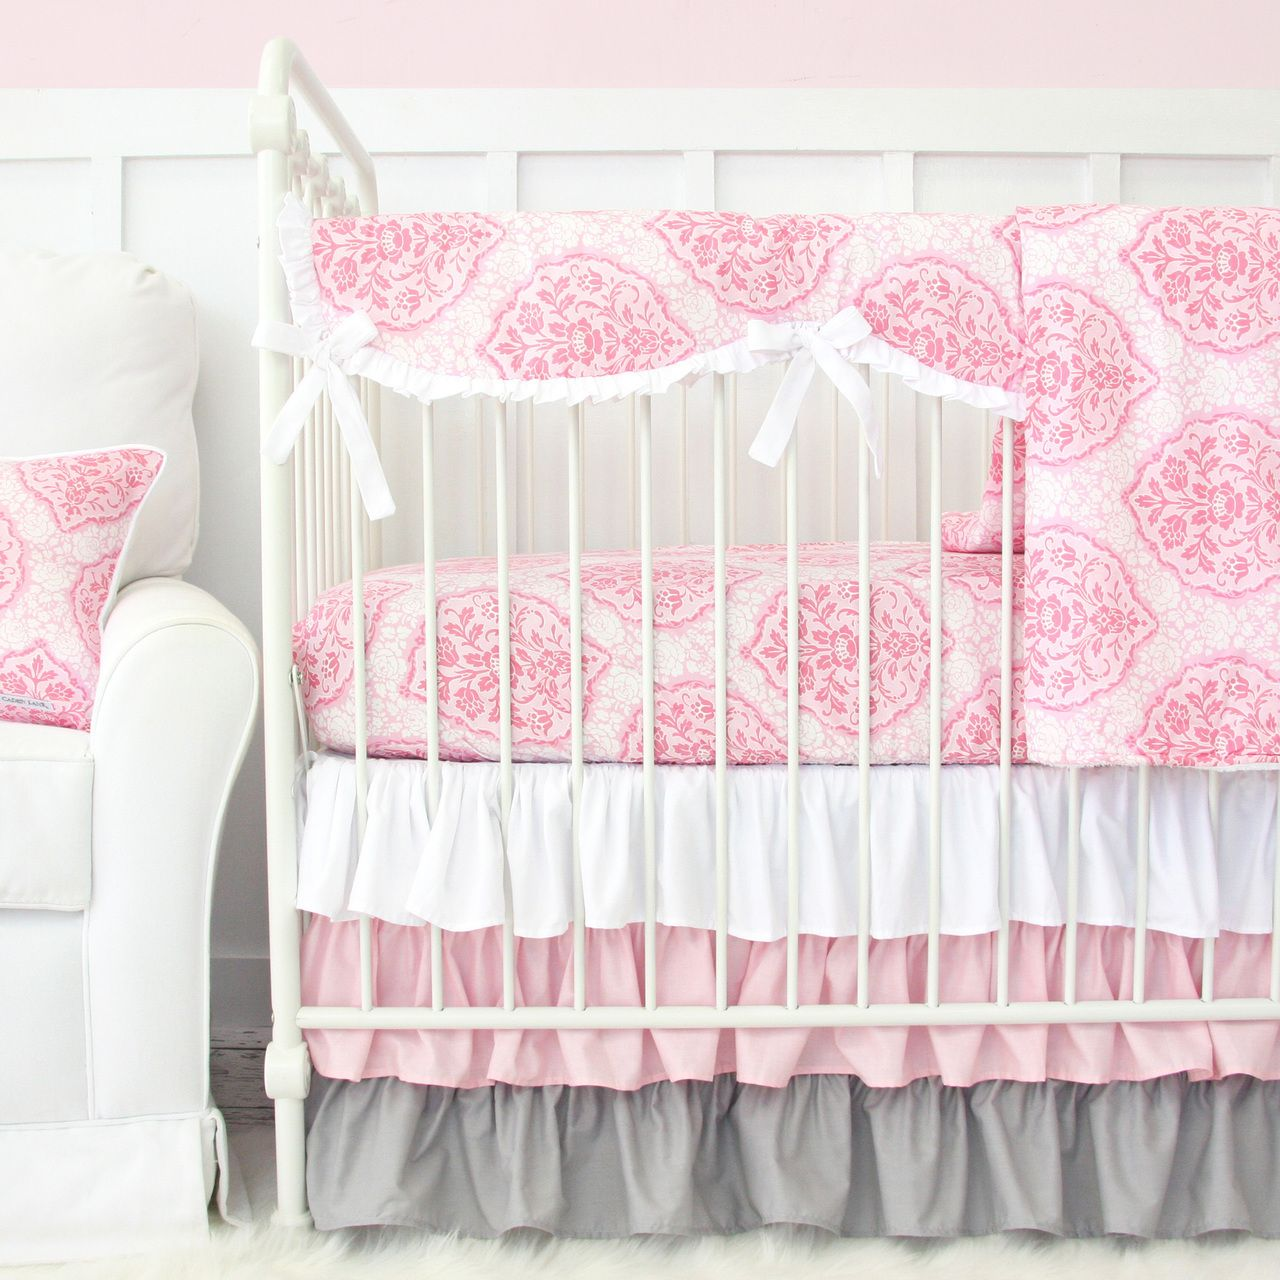 A Clic Pink Gray Crib Bedding Set That S Perfectly Elegant For Any Baby Nursery